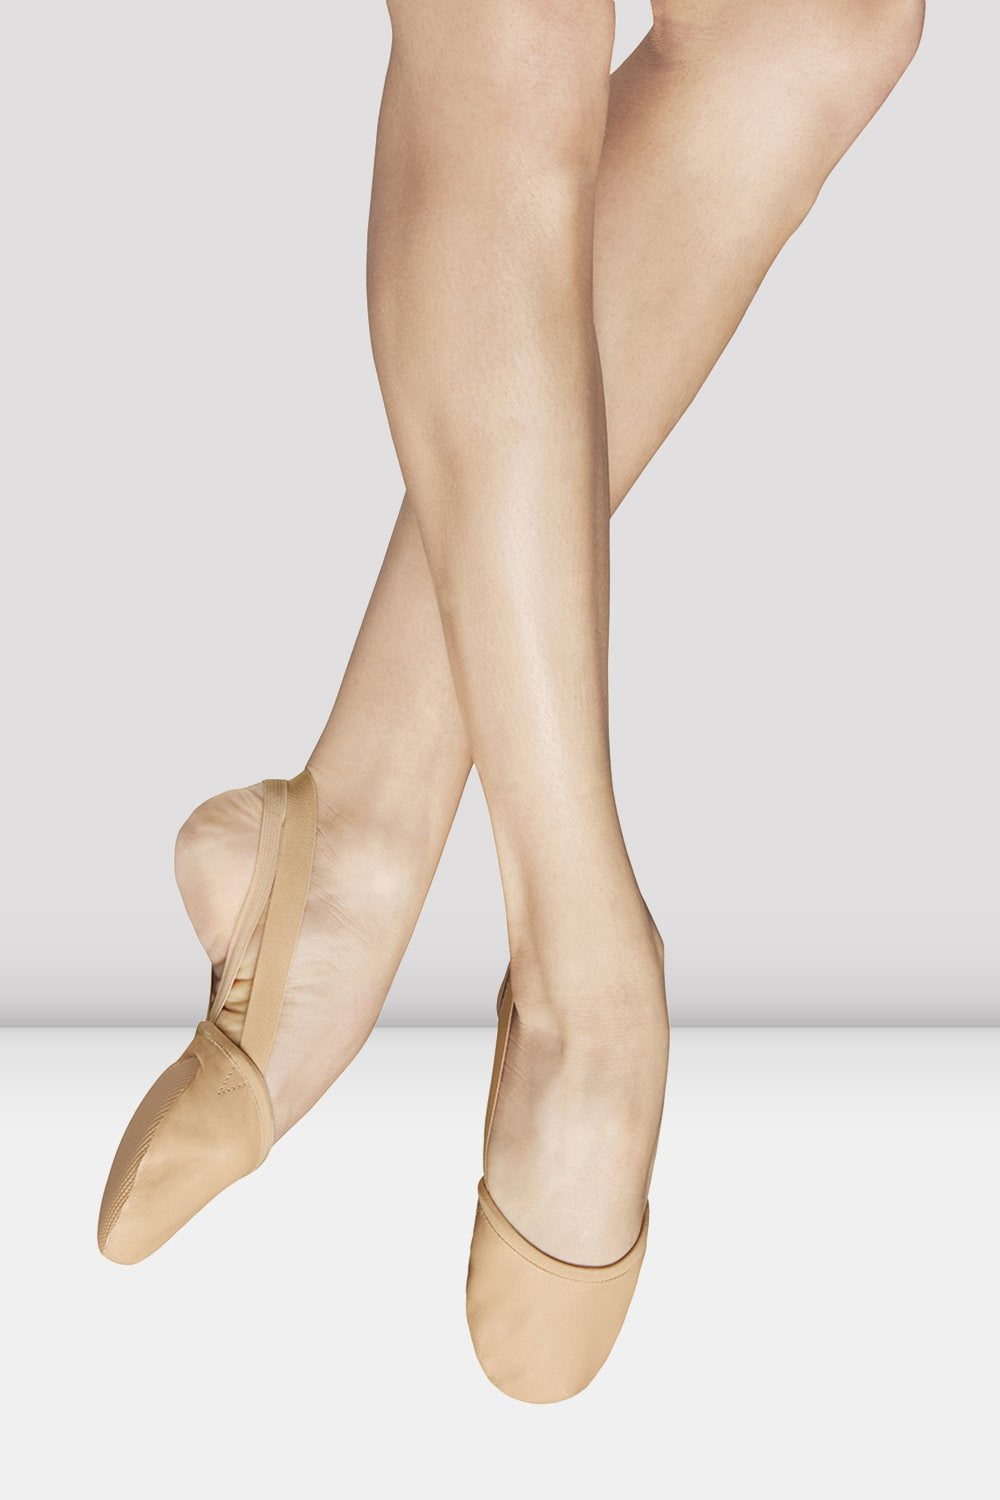 Adult Revolve Half Sole Shoes - BLOCH US